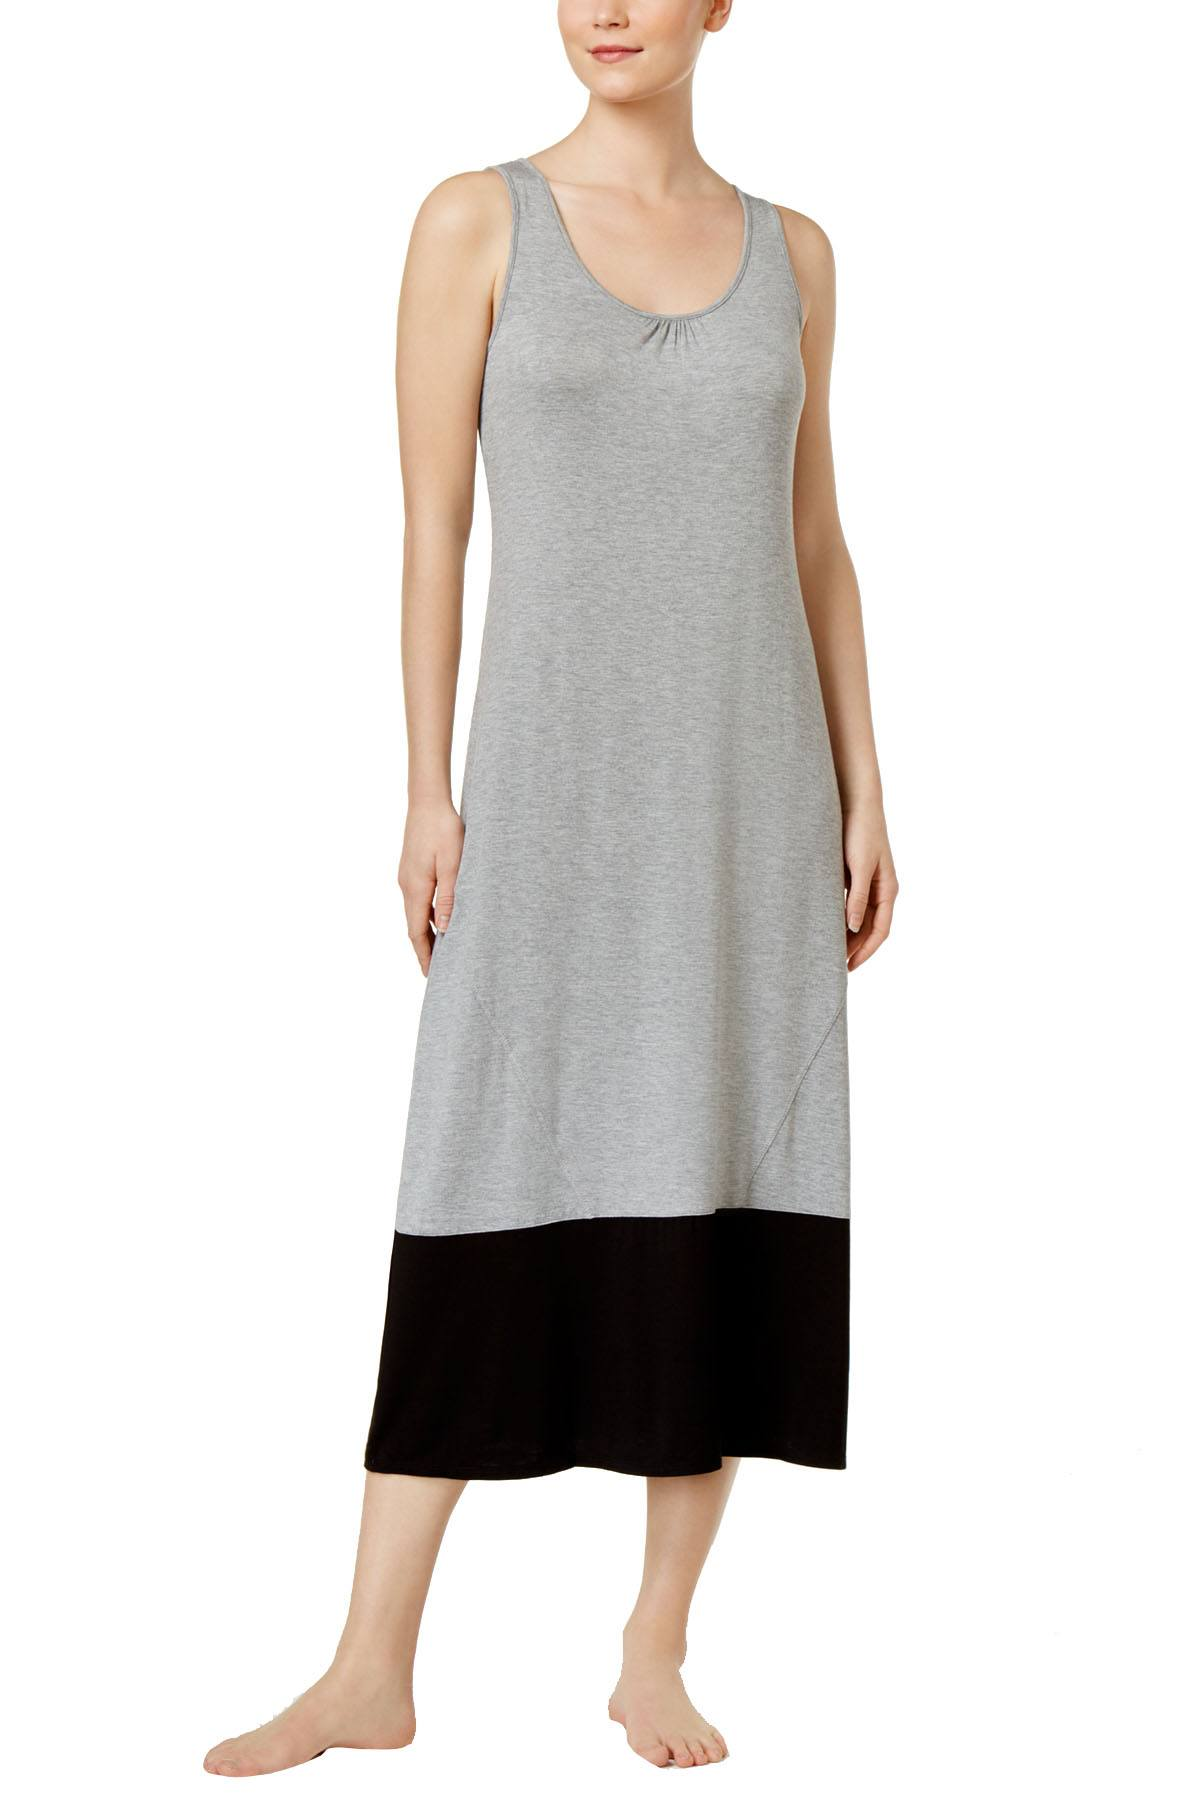 Alfani Sleeveless Colorblocked Knit Nightgown in Grey Heather